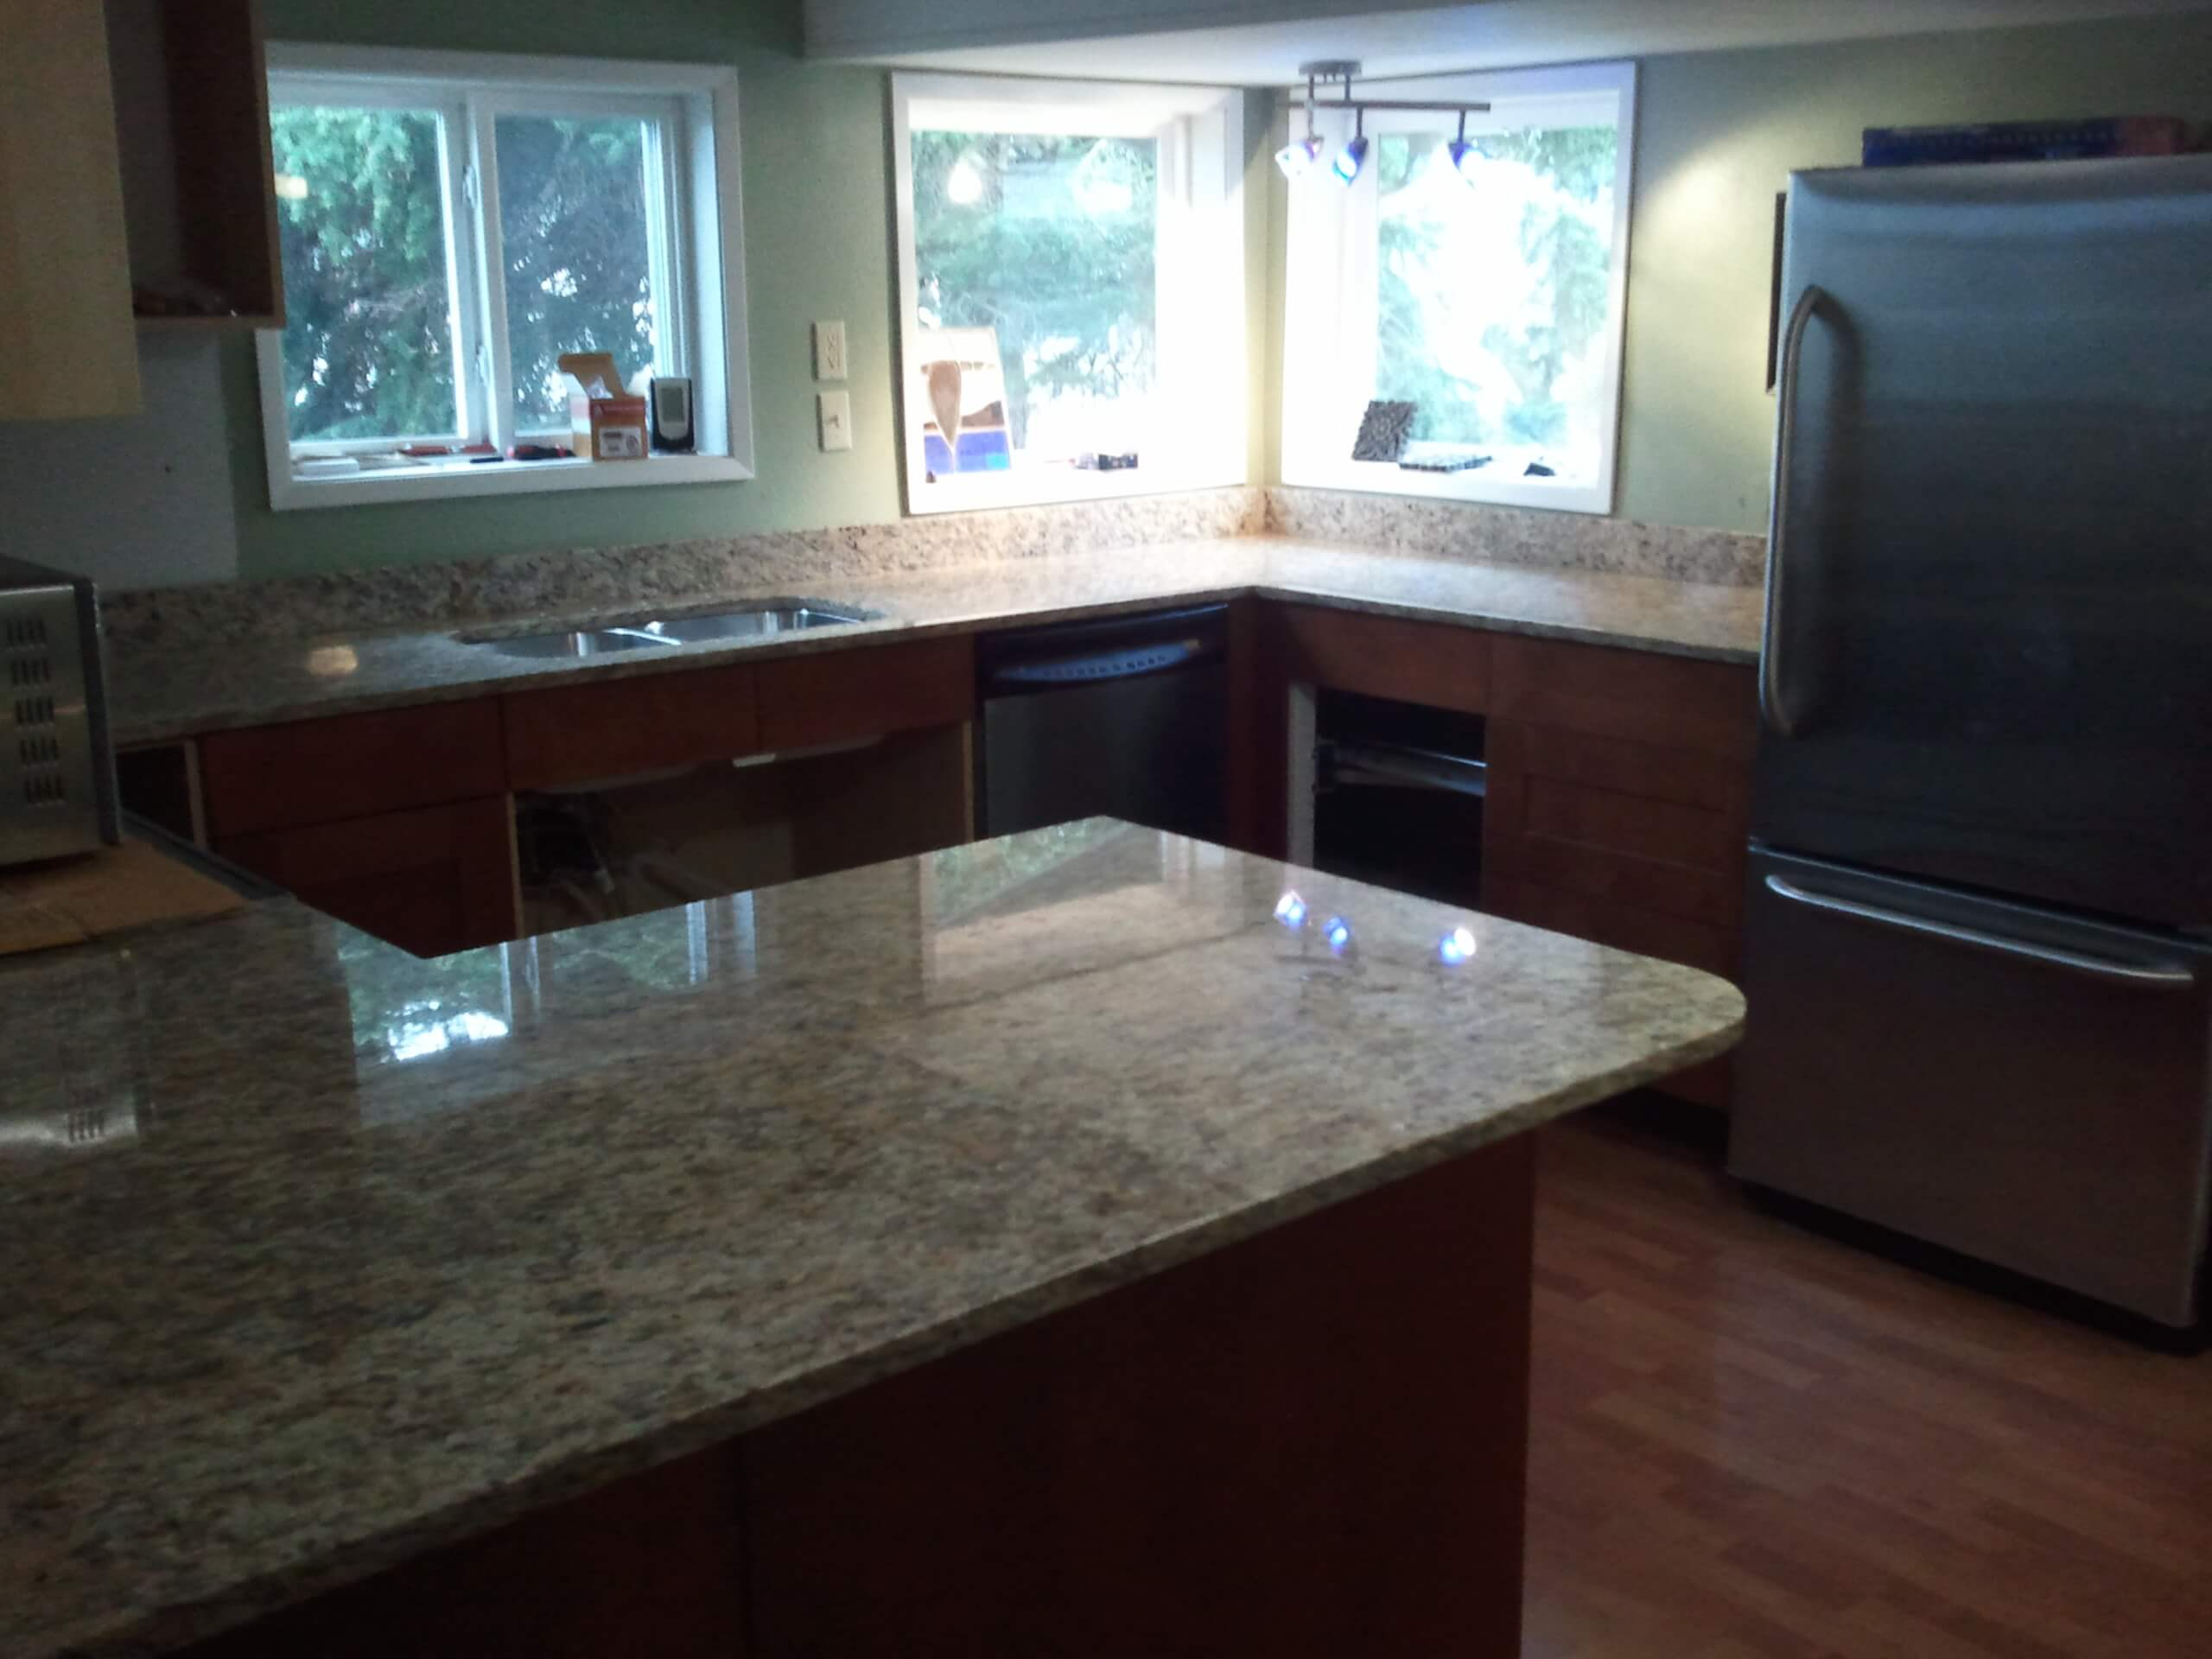 fabricator countertops web images quartz countertop products durability distributor slab